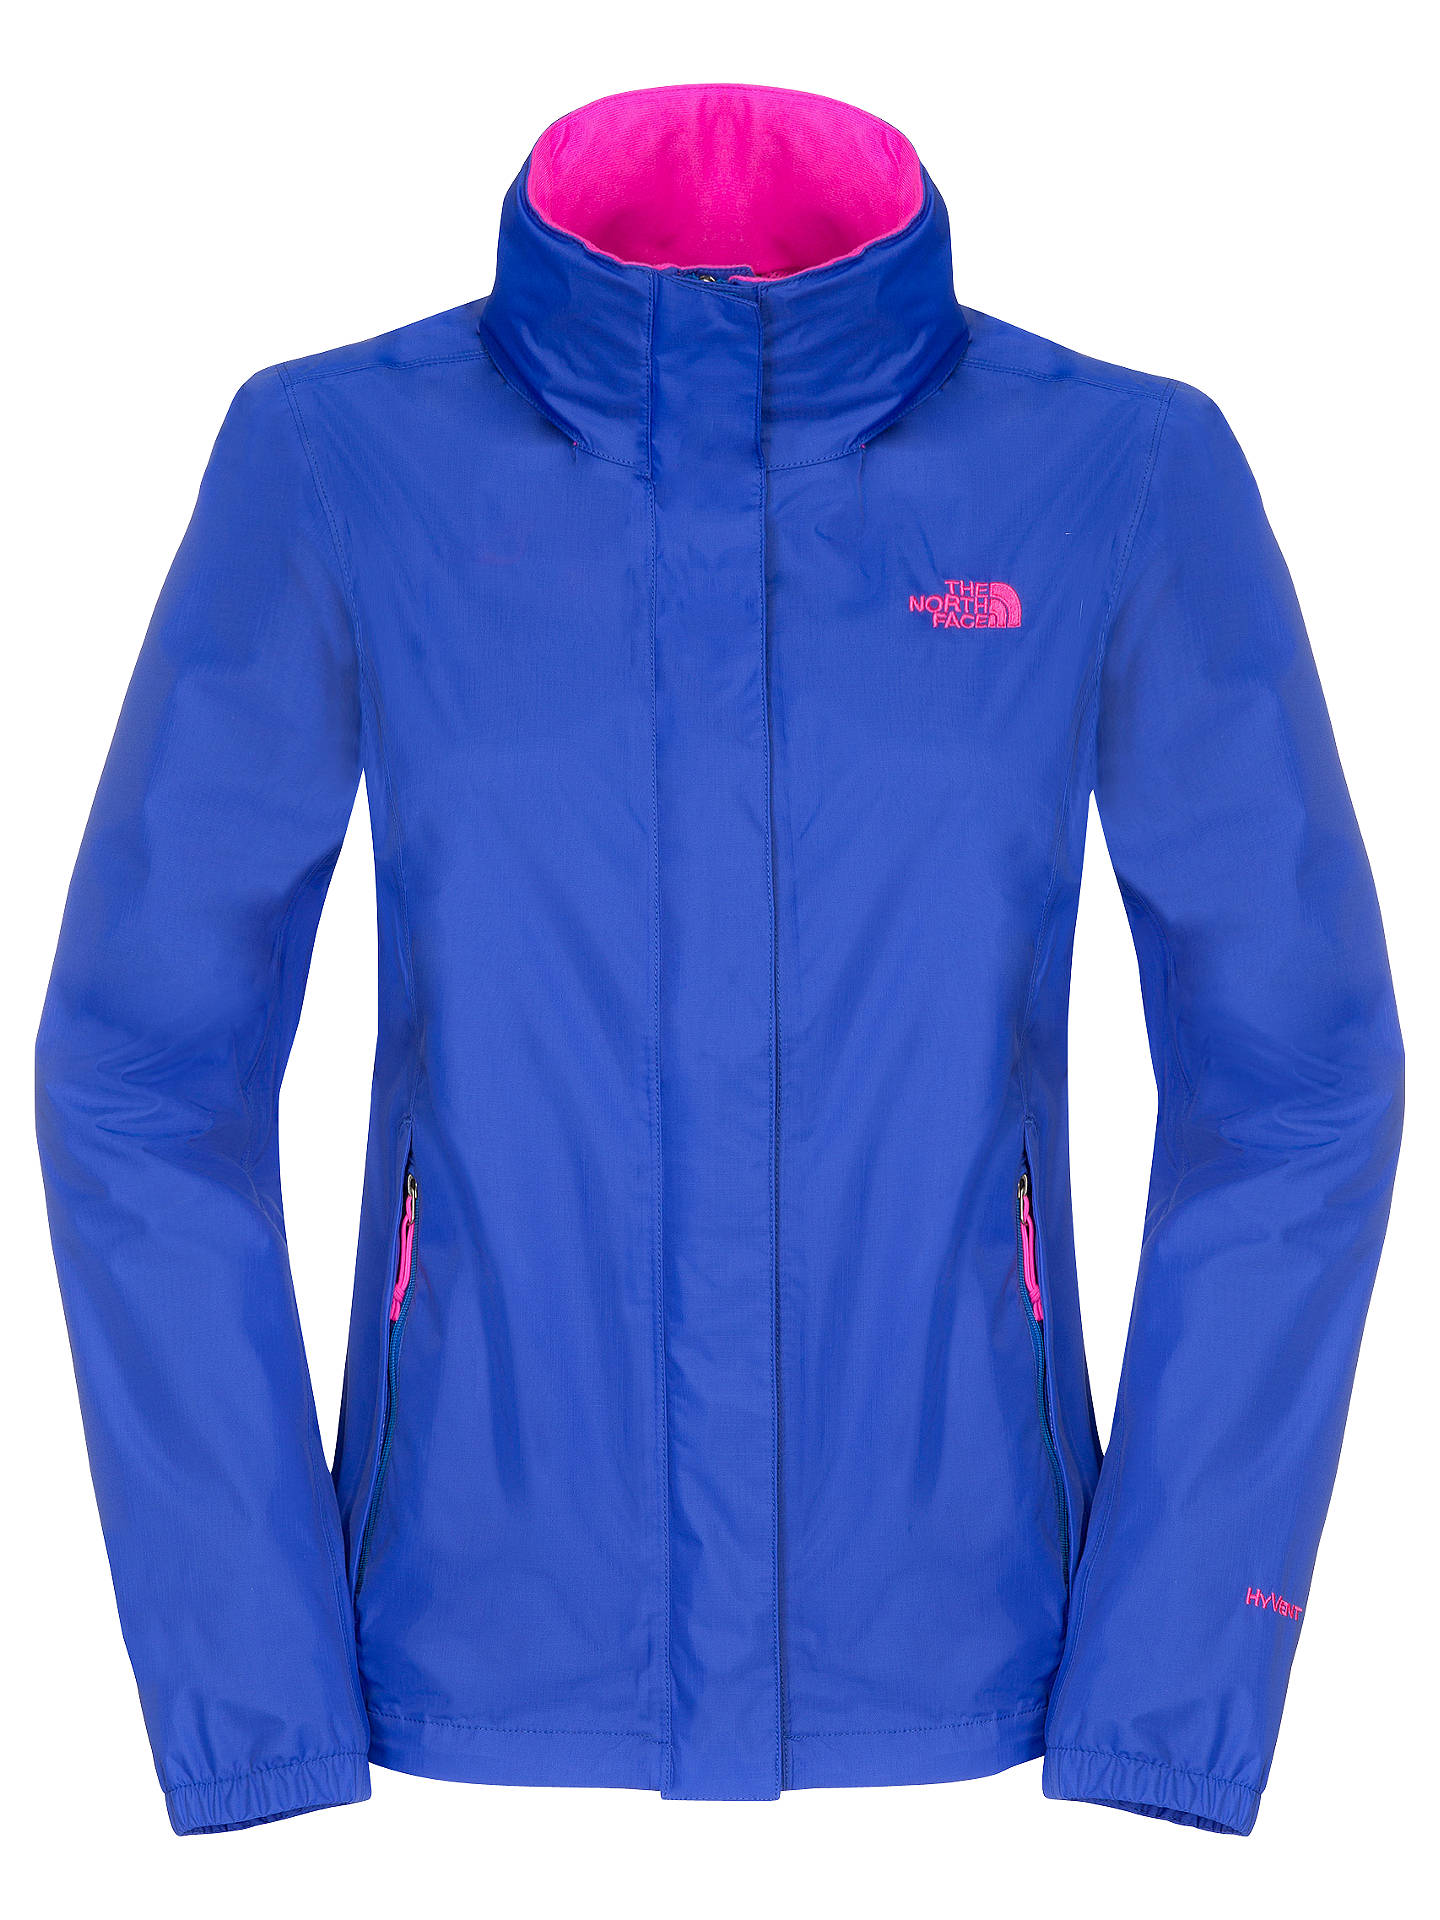 finest selection 3220c c8243 The North Face Women's Resolve Jacket, Marker Blue at John ...